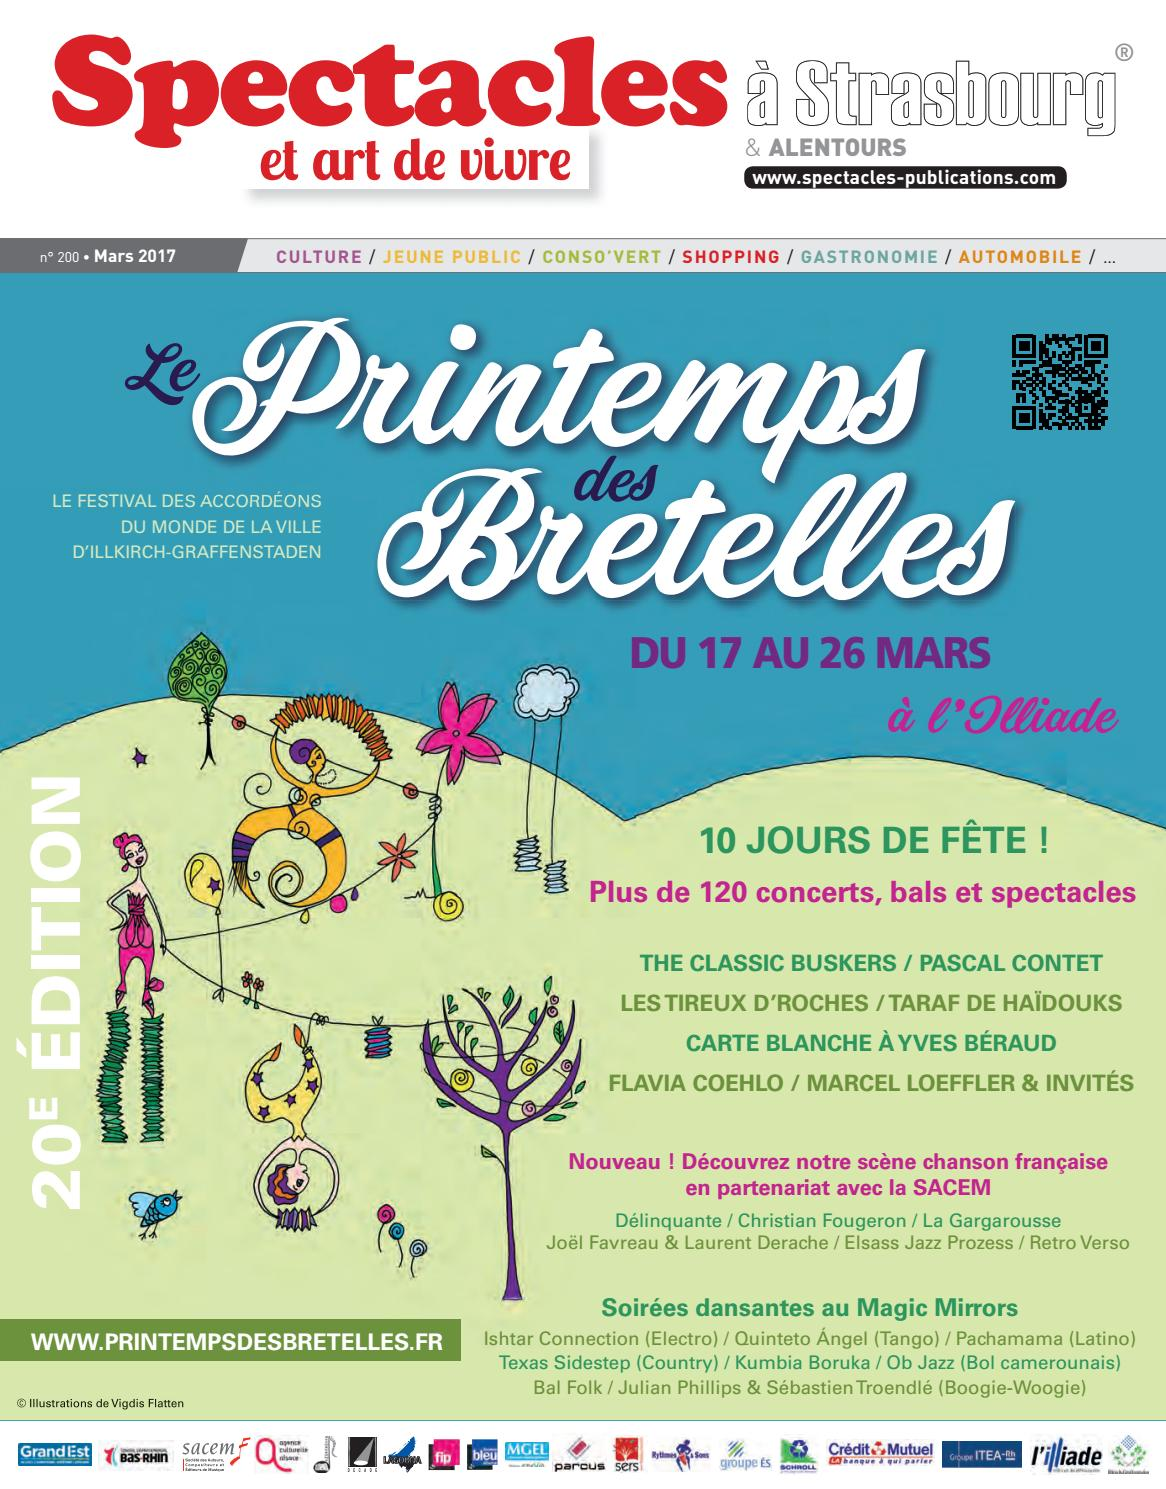 Meubles 3 Fontaines Ittenheim spectacles publications strasbourg n°200 / mars 2017